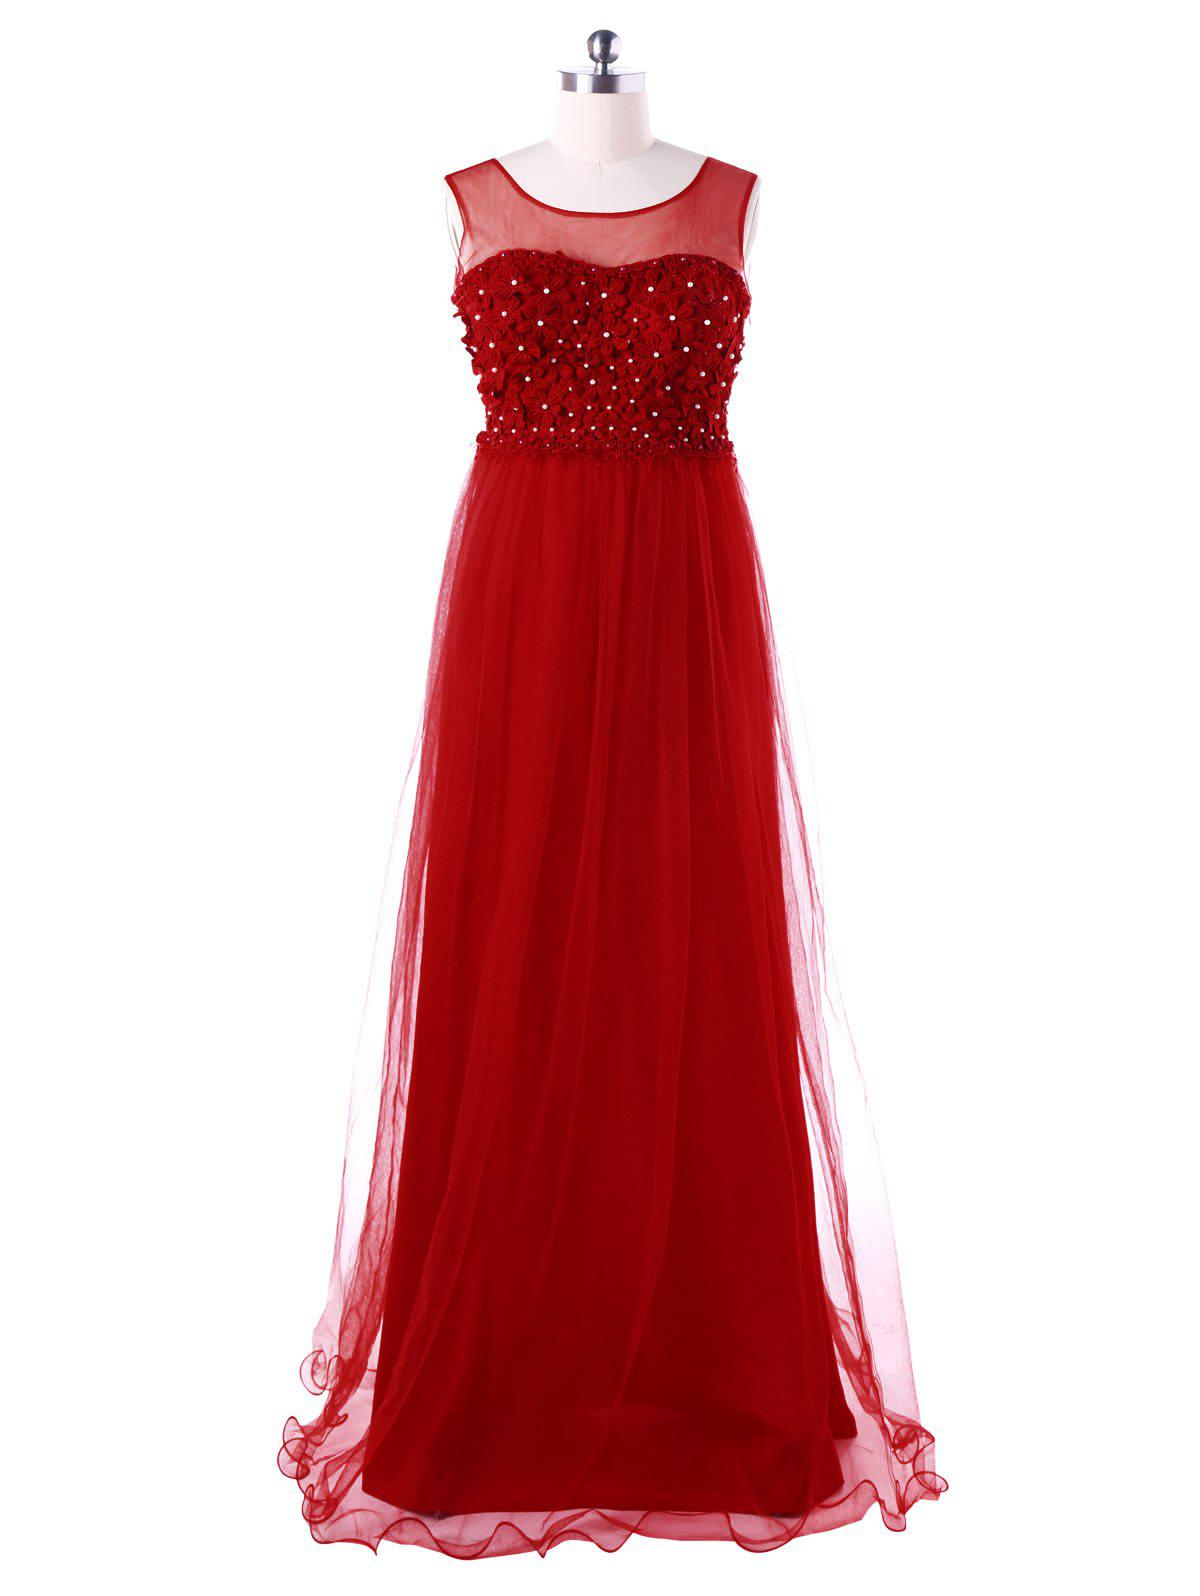 Floral Tulle Sleeveless Floor Length Dress - RED 2XL